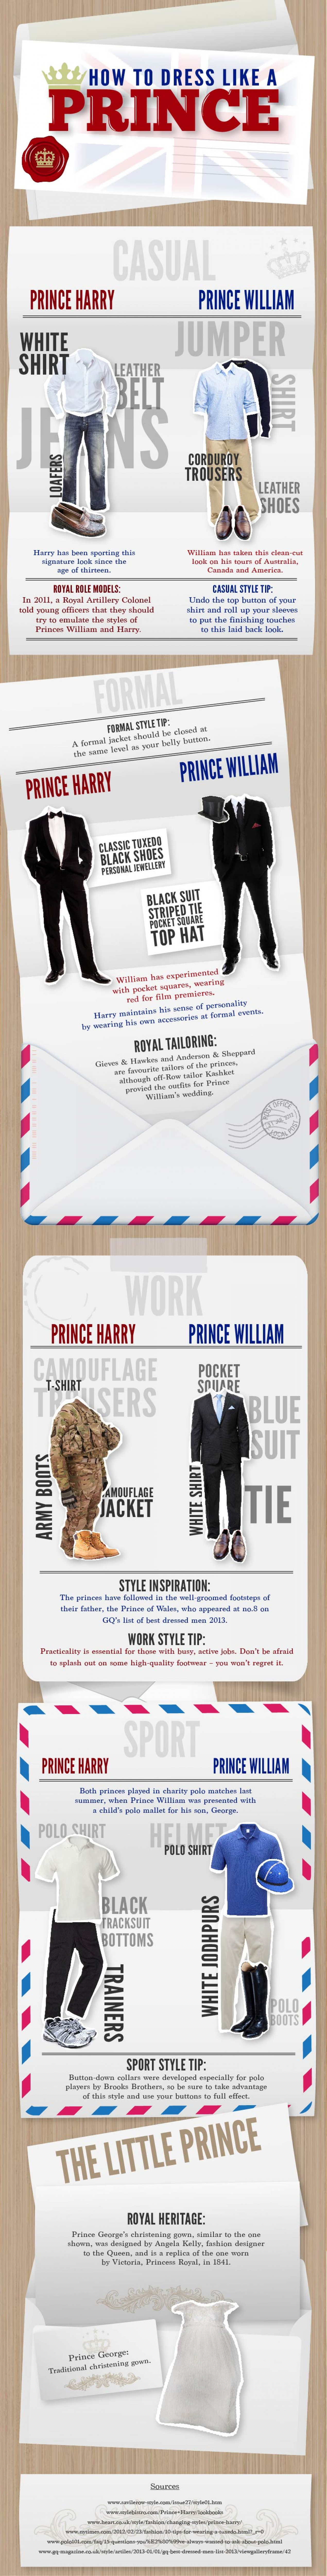 How To Dress Like A Prince Infographic